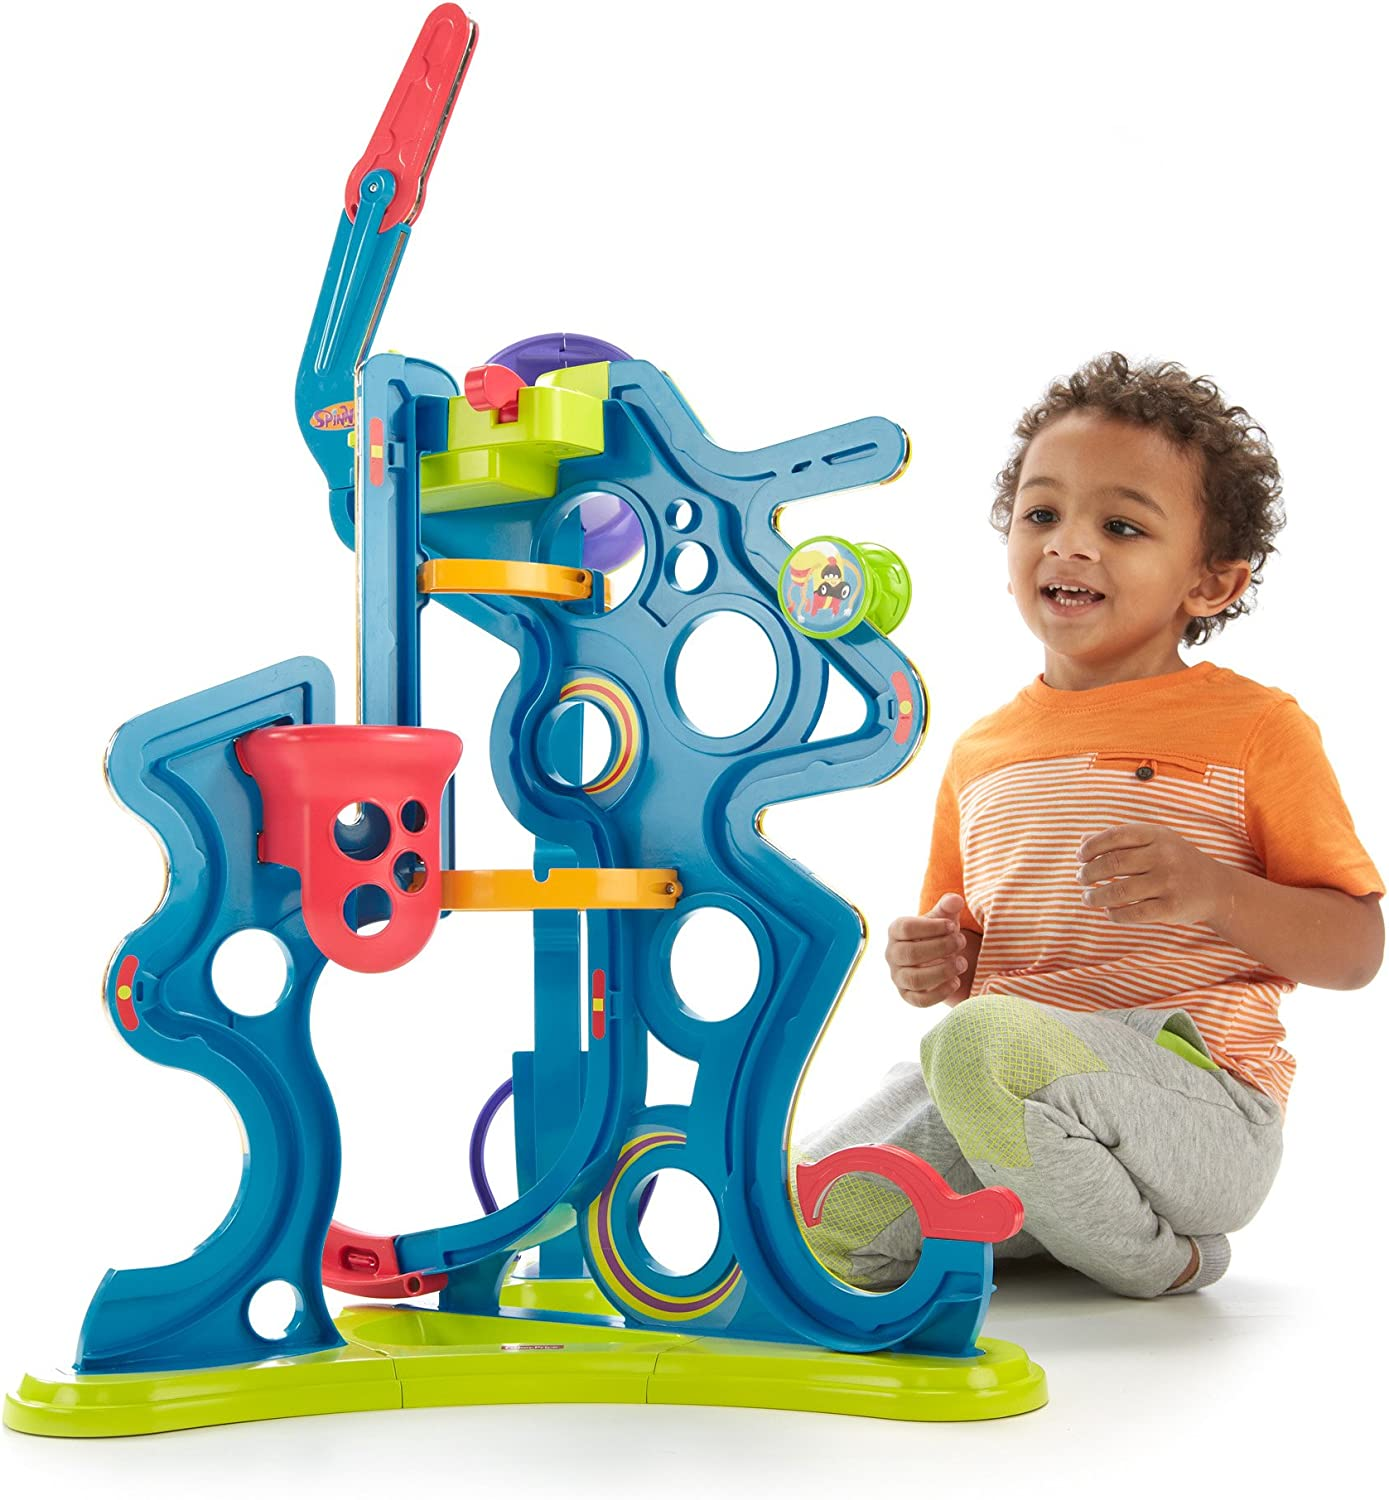 FisherPrice Spinnyos Giant Yoller Coaster by FisherPrice